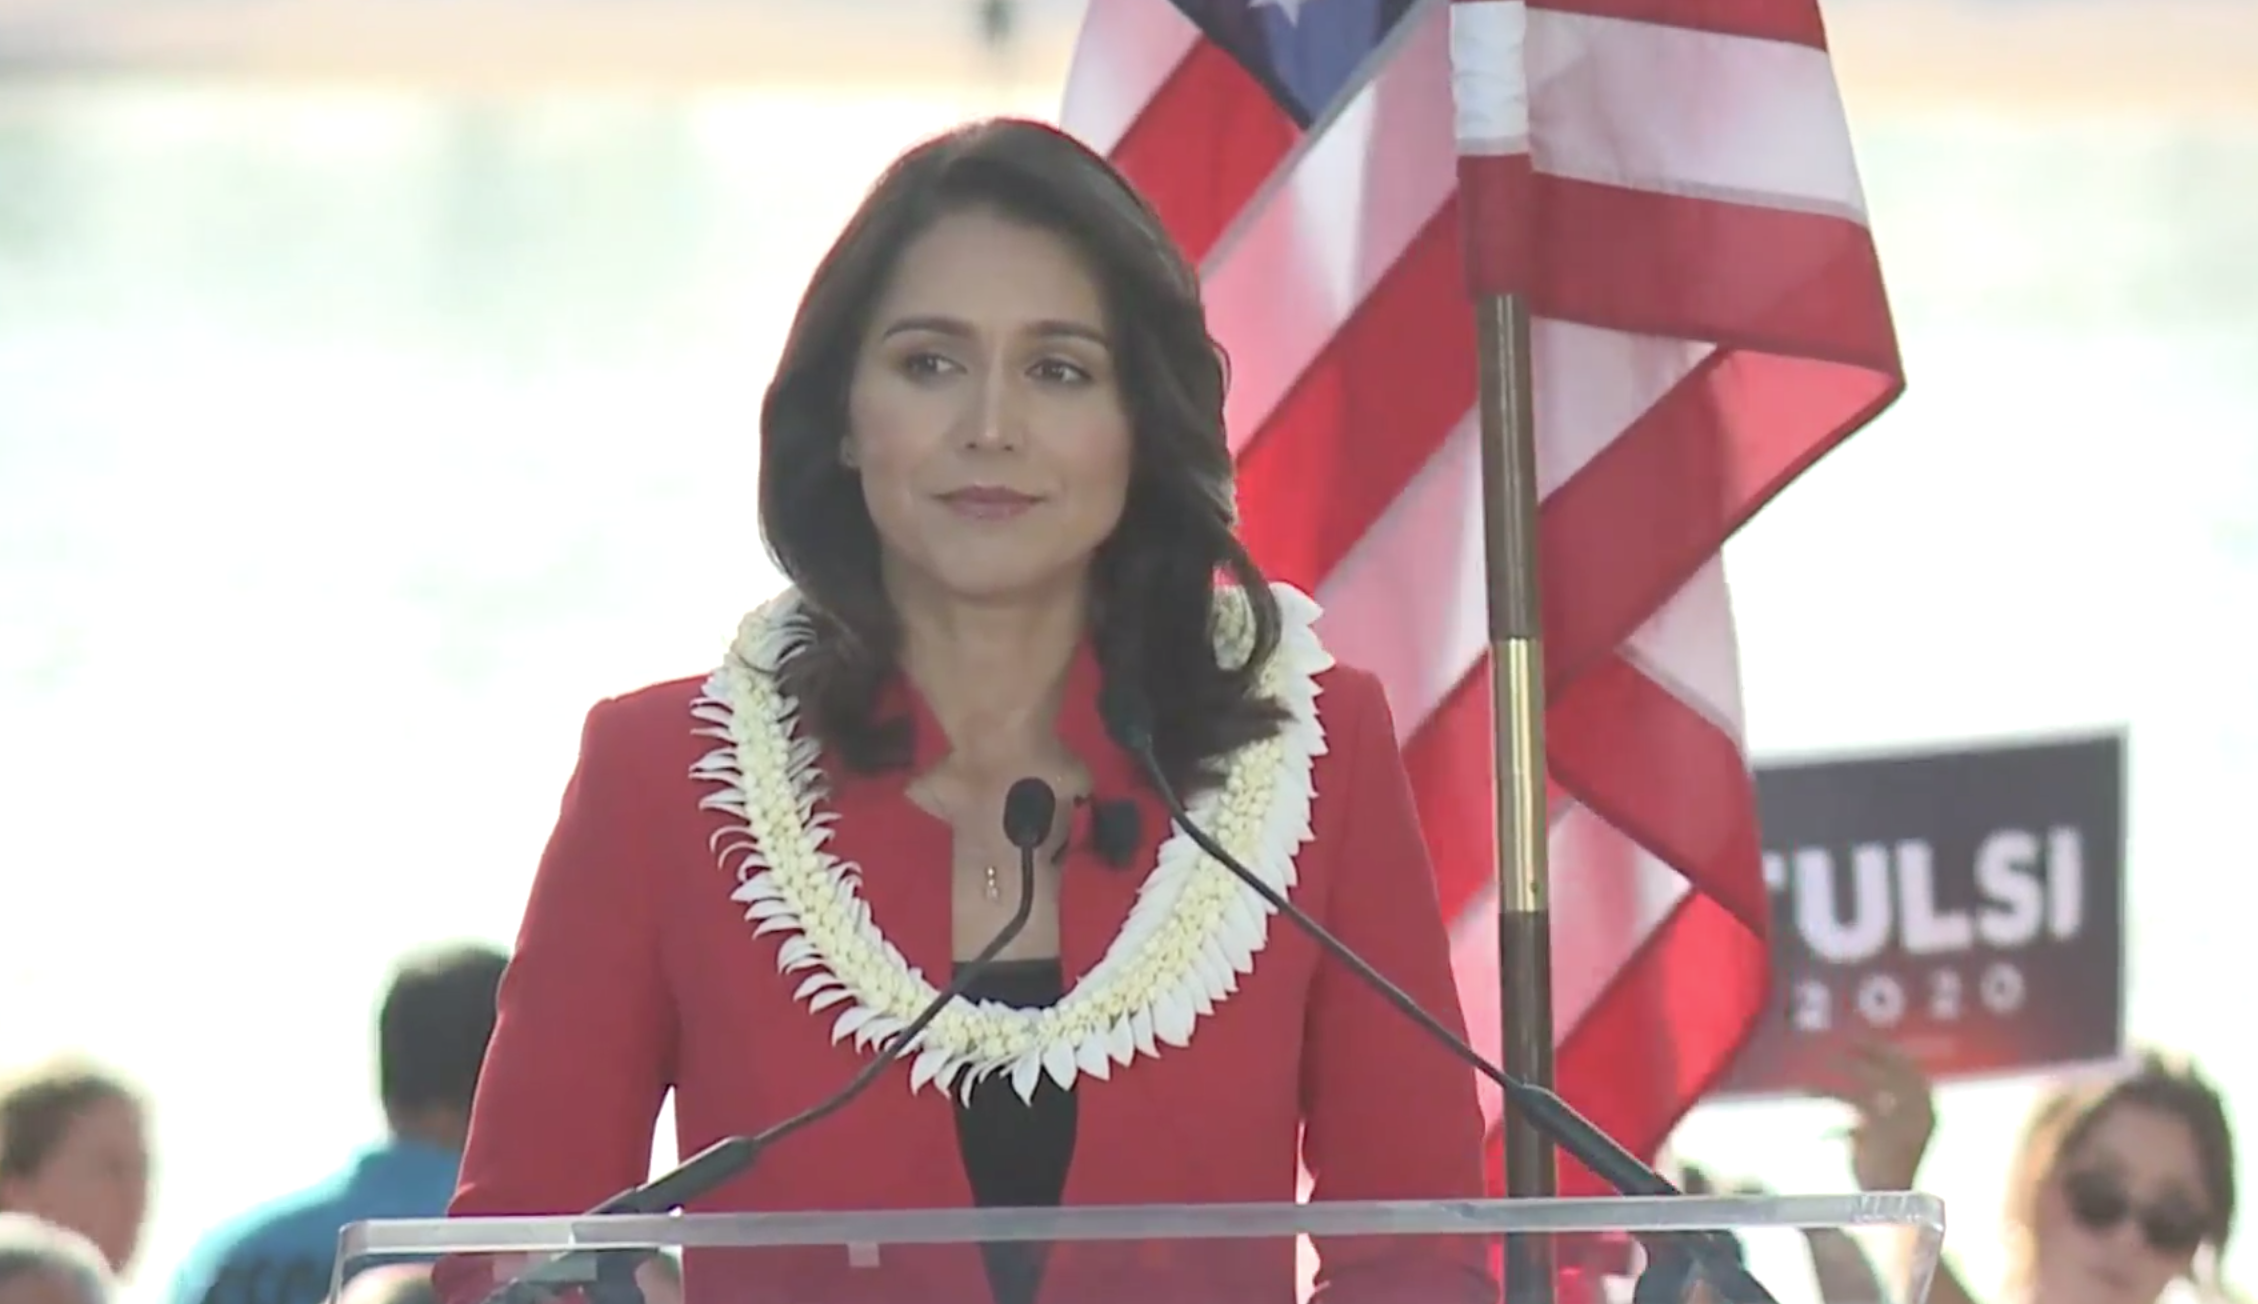 Tulsi Gabbard official announcement 2020 presidential campaign